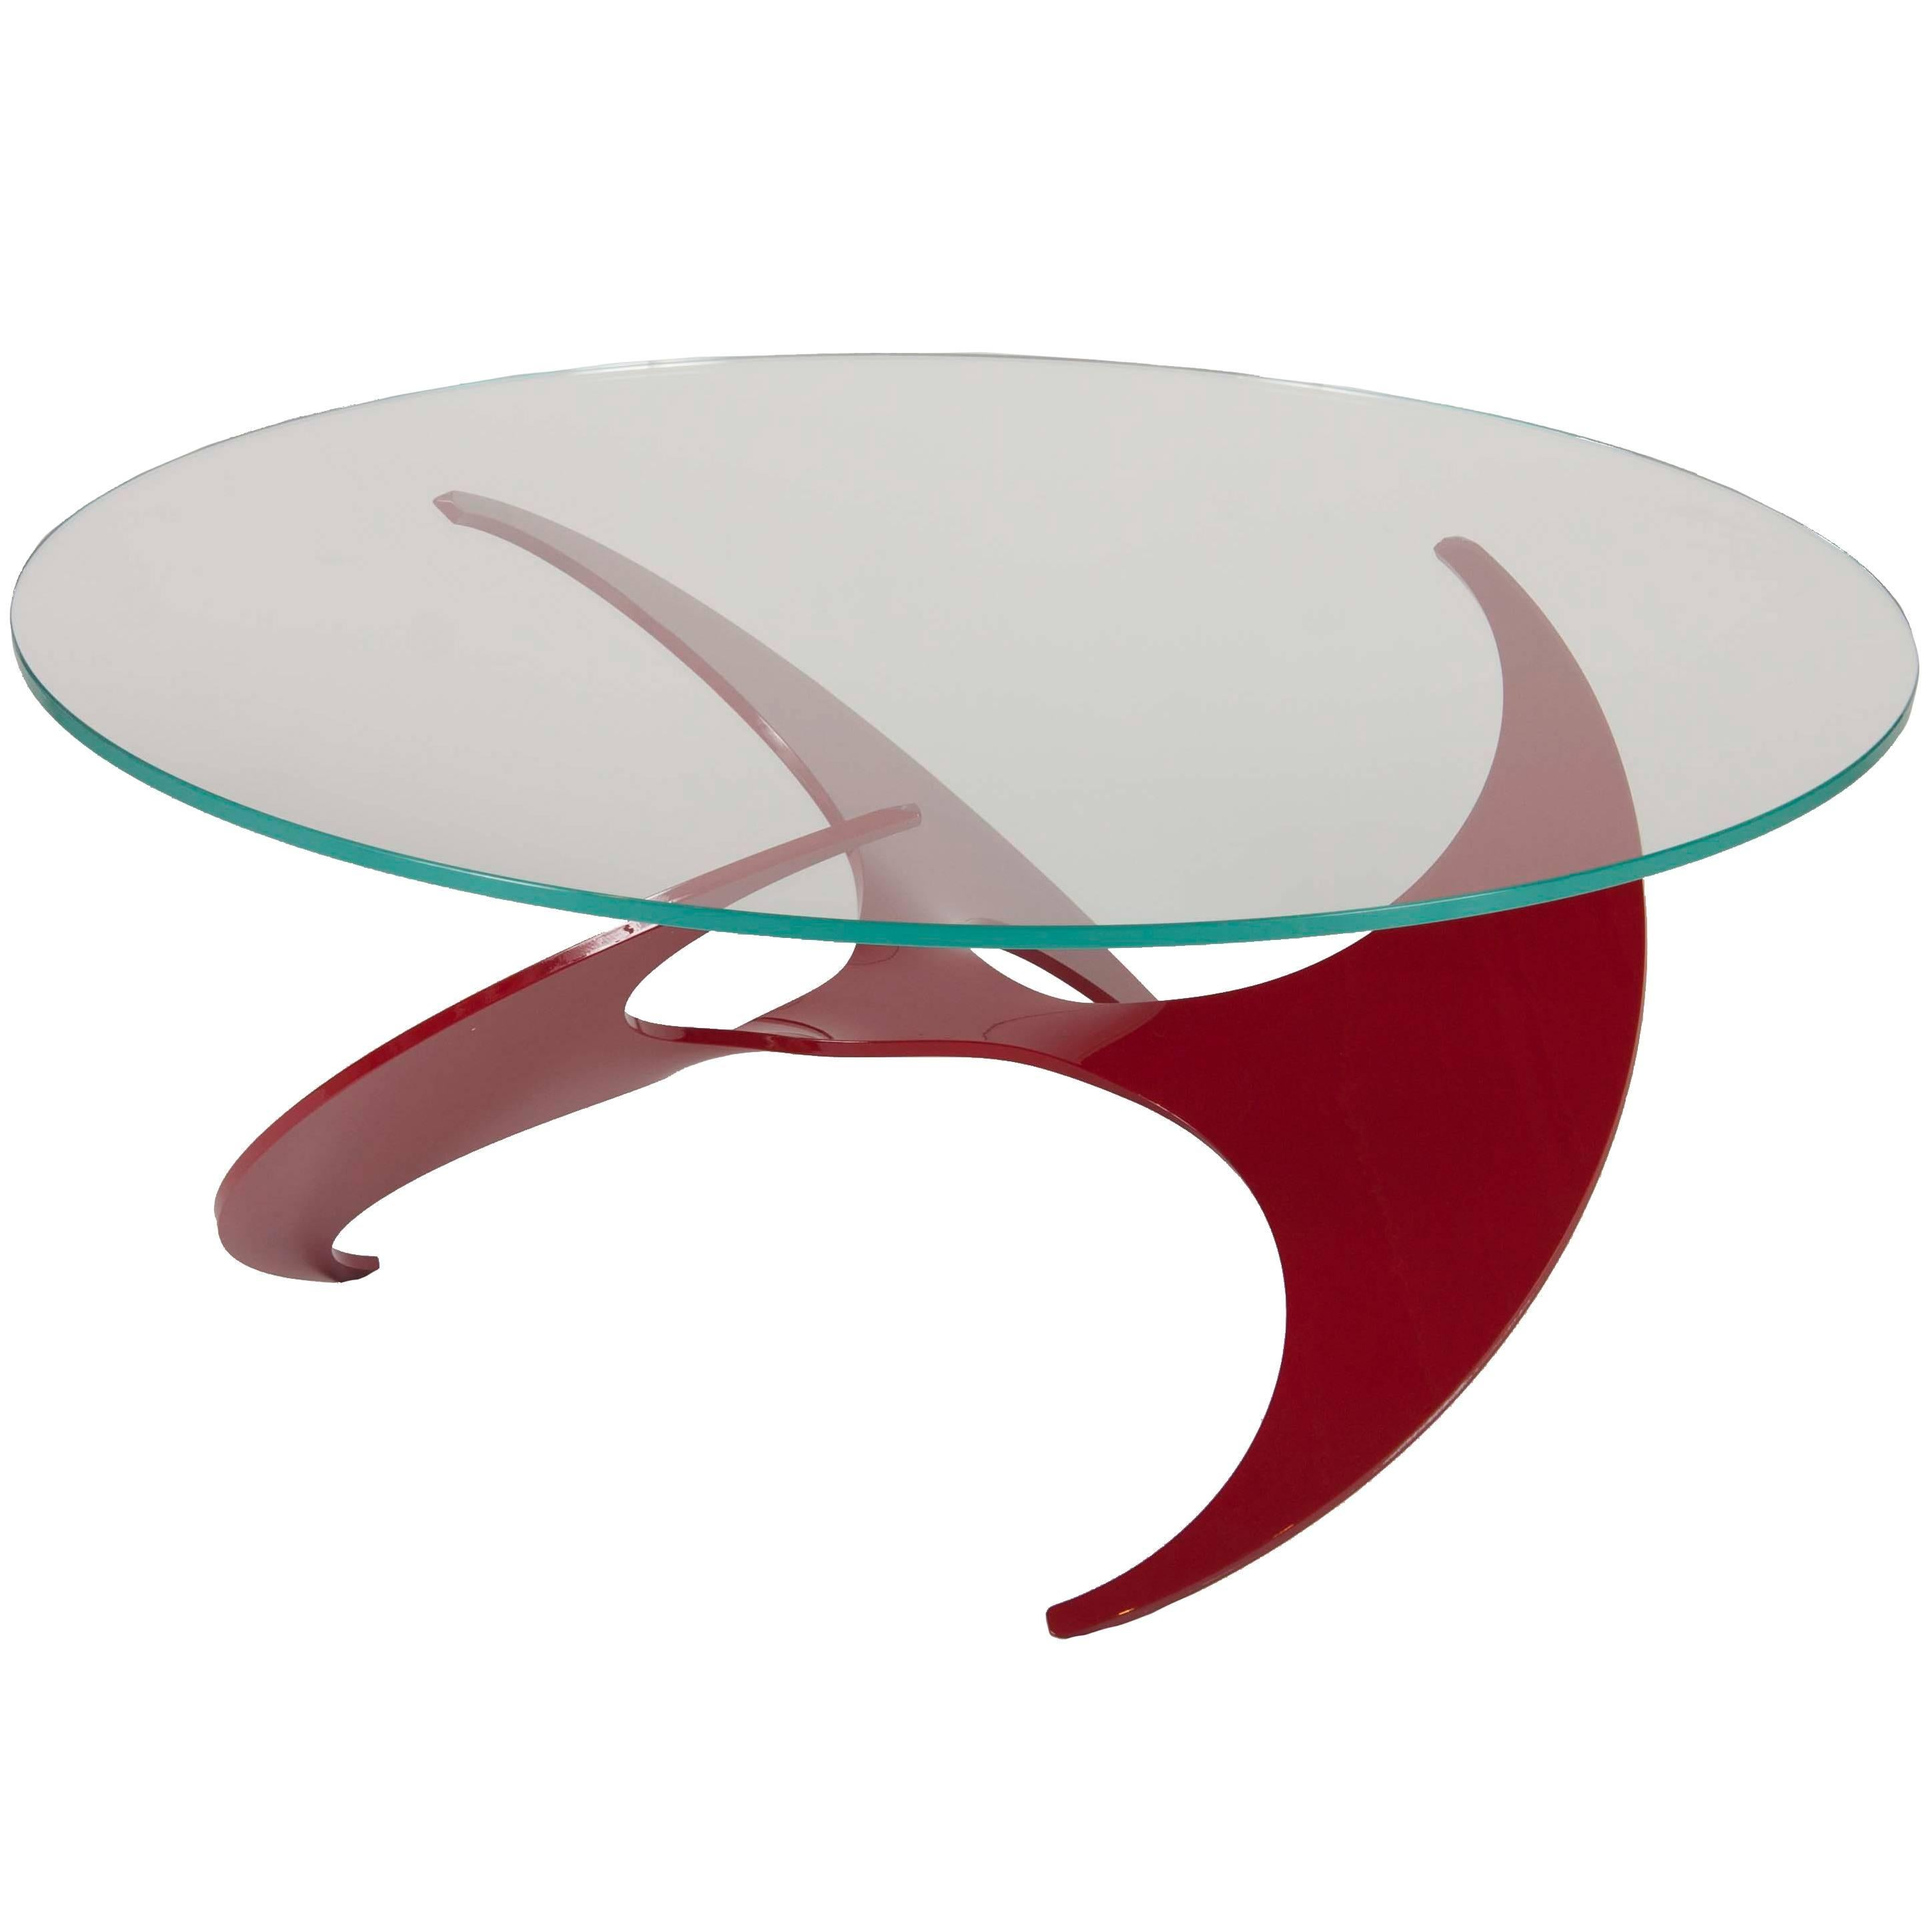 """Knut Hesterburg """"Propeller"""" Coffee Table in Cherry Enamel over Anodized Aluminum"""